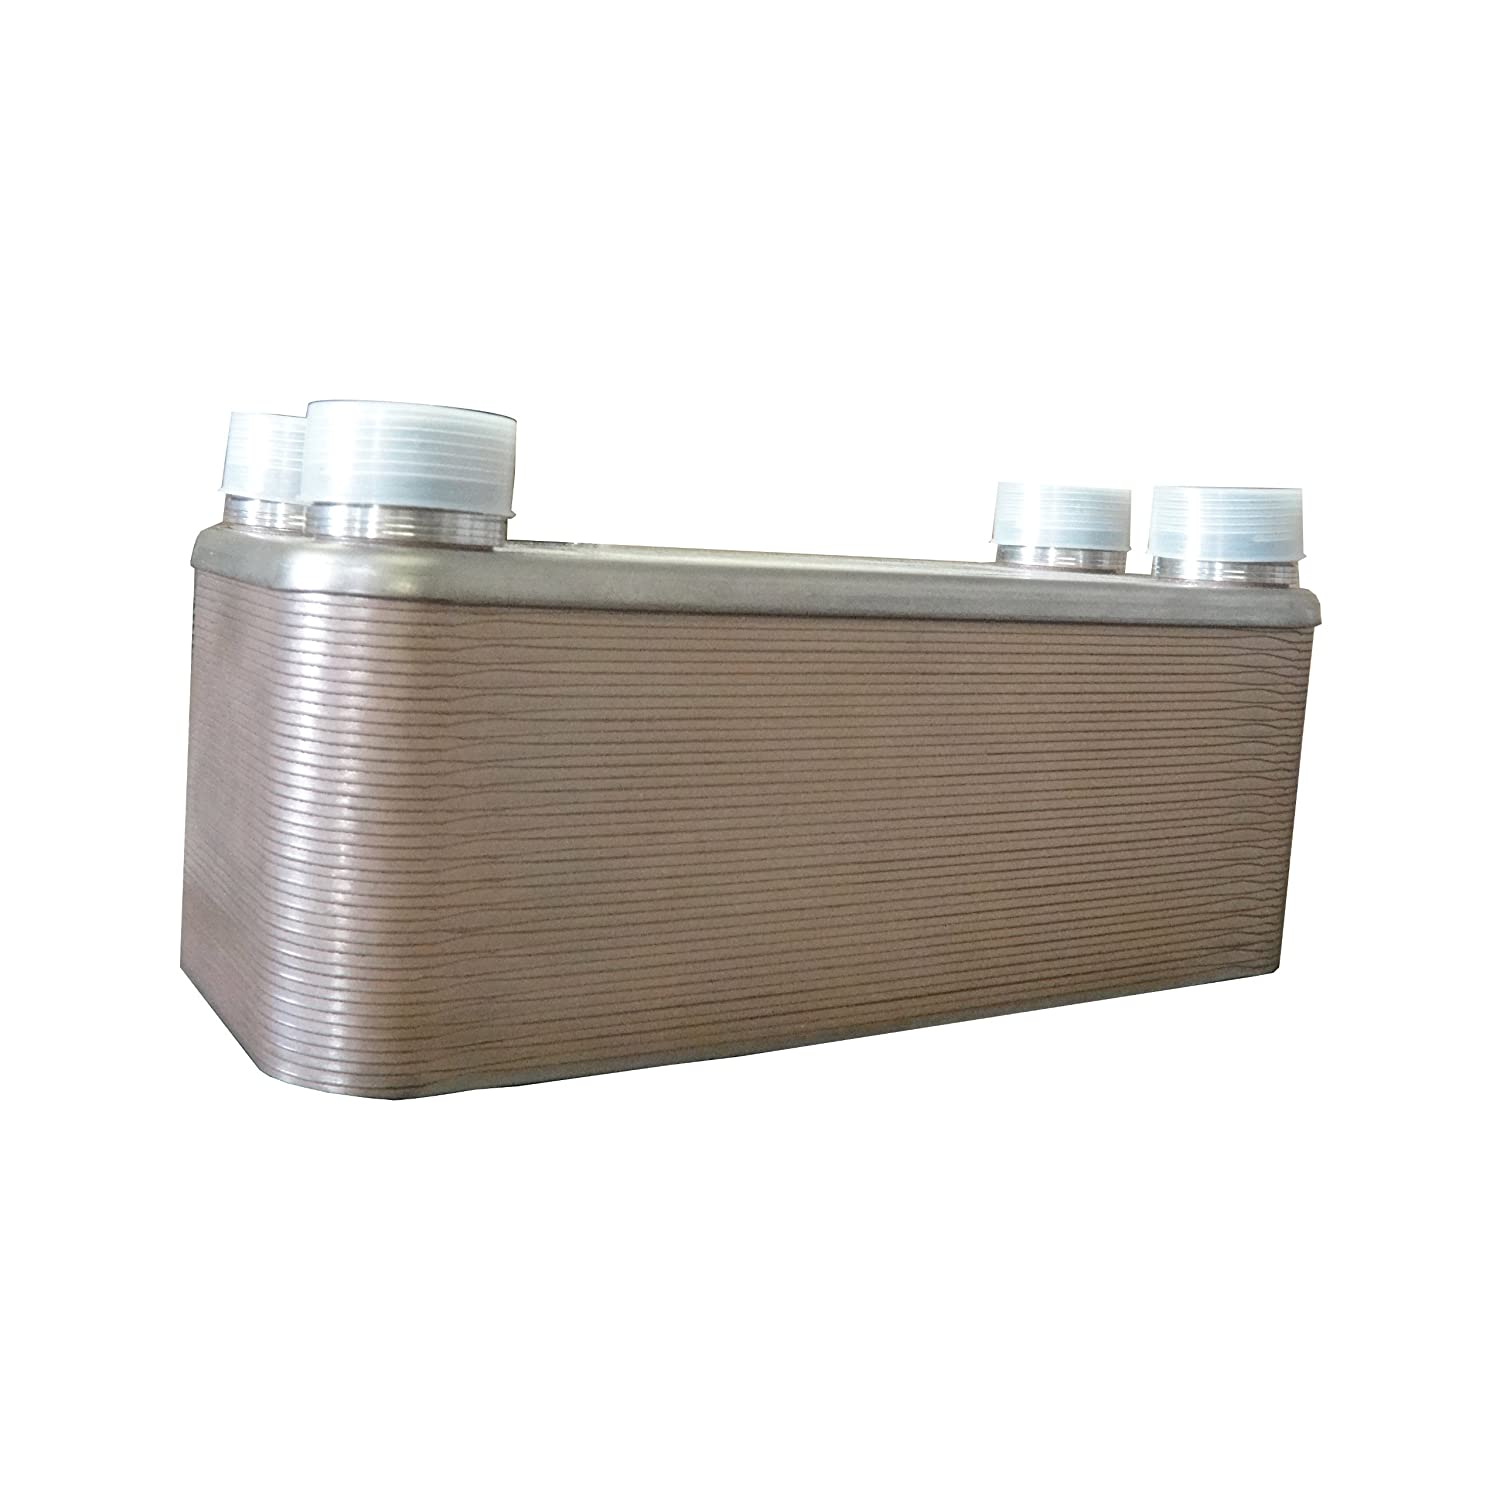 heat exchanger Find great deals on ebay for water heat exchanger in furnace and heating systems shop with confidence.